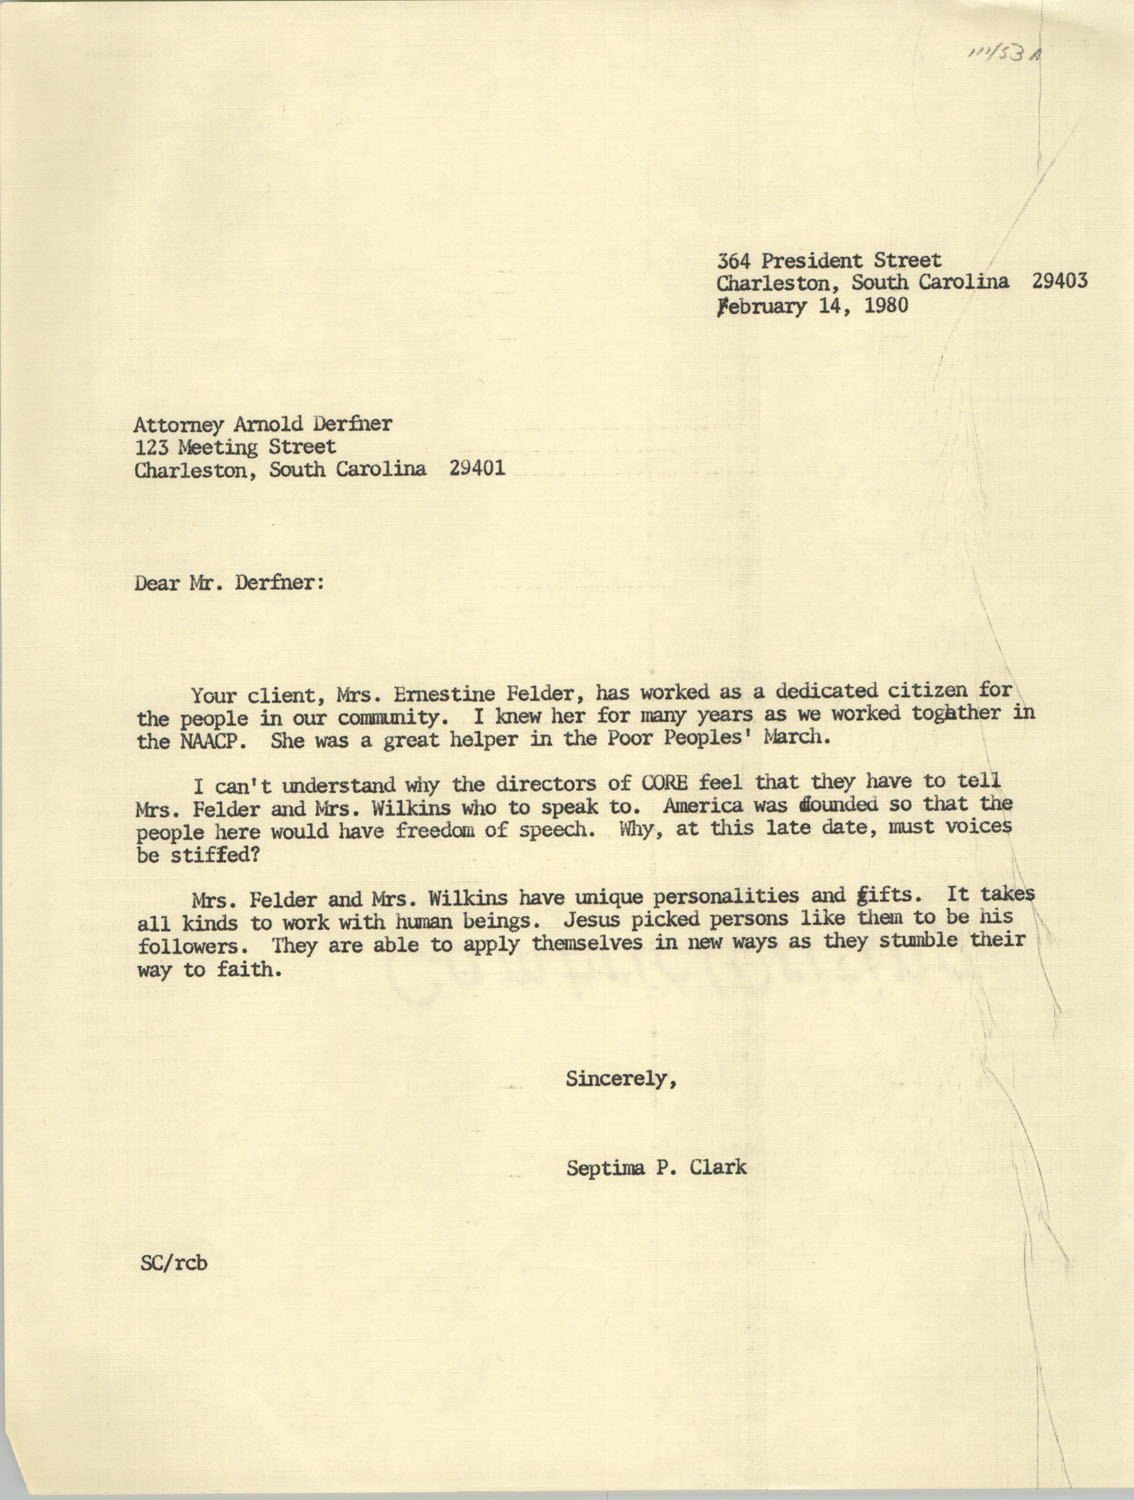 Letter from Septima P. Clark to Arnold Derfner, February 14, 1980